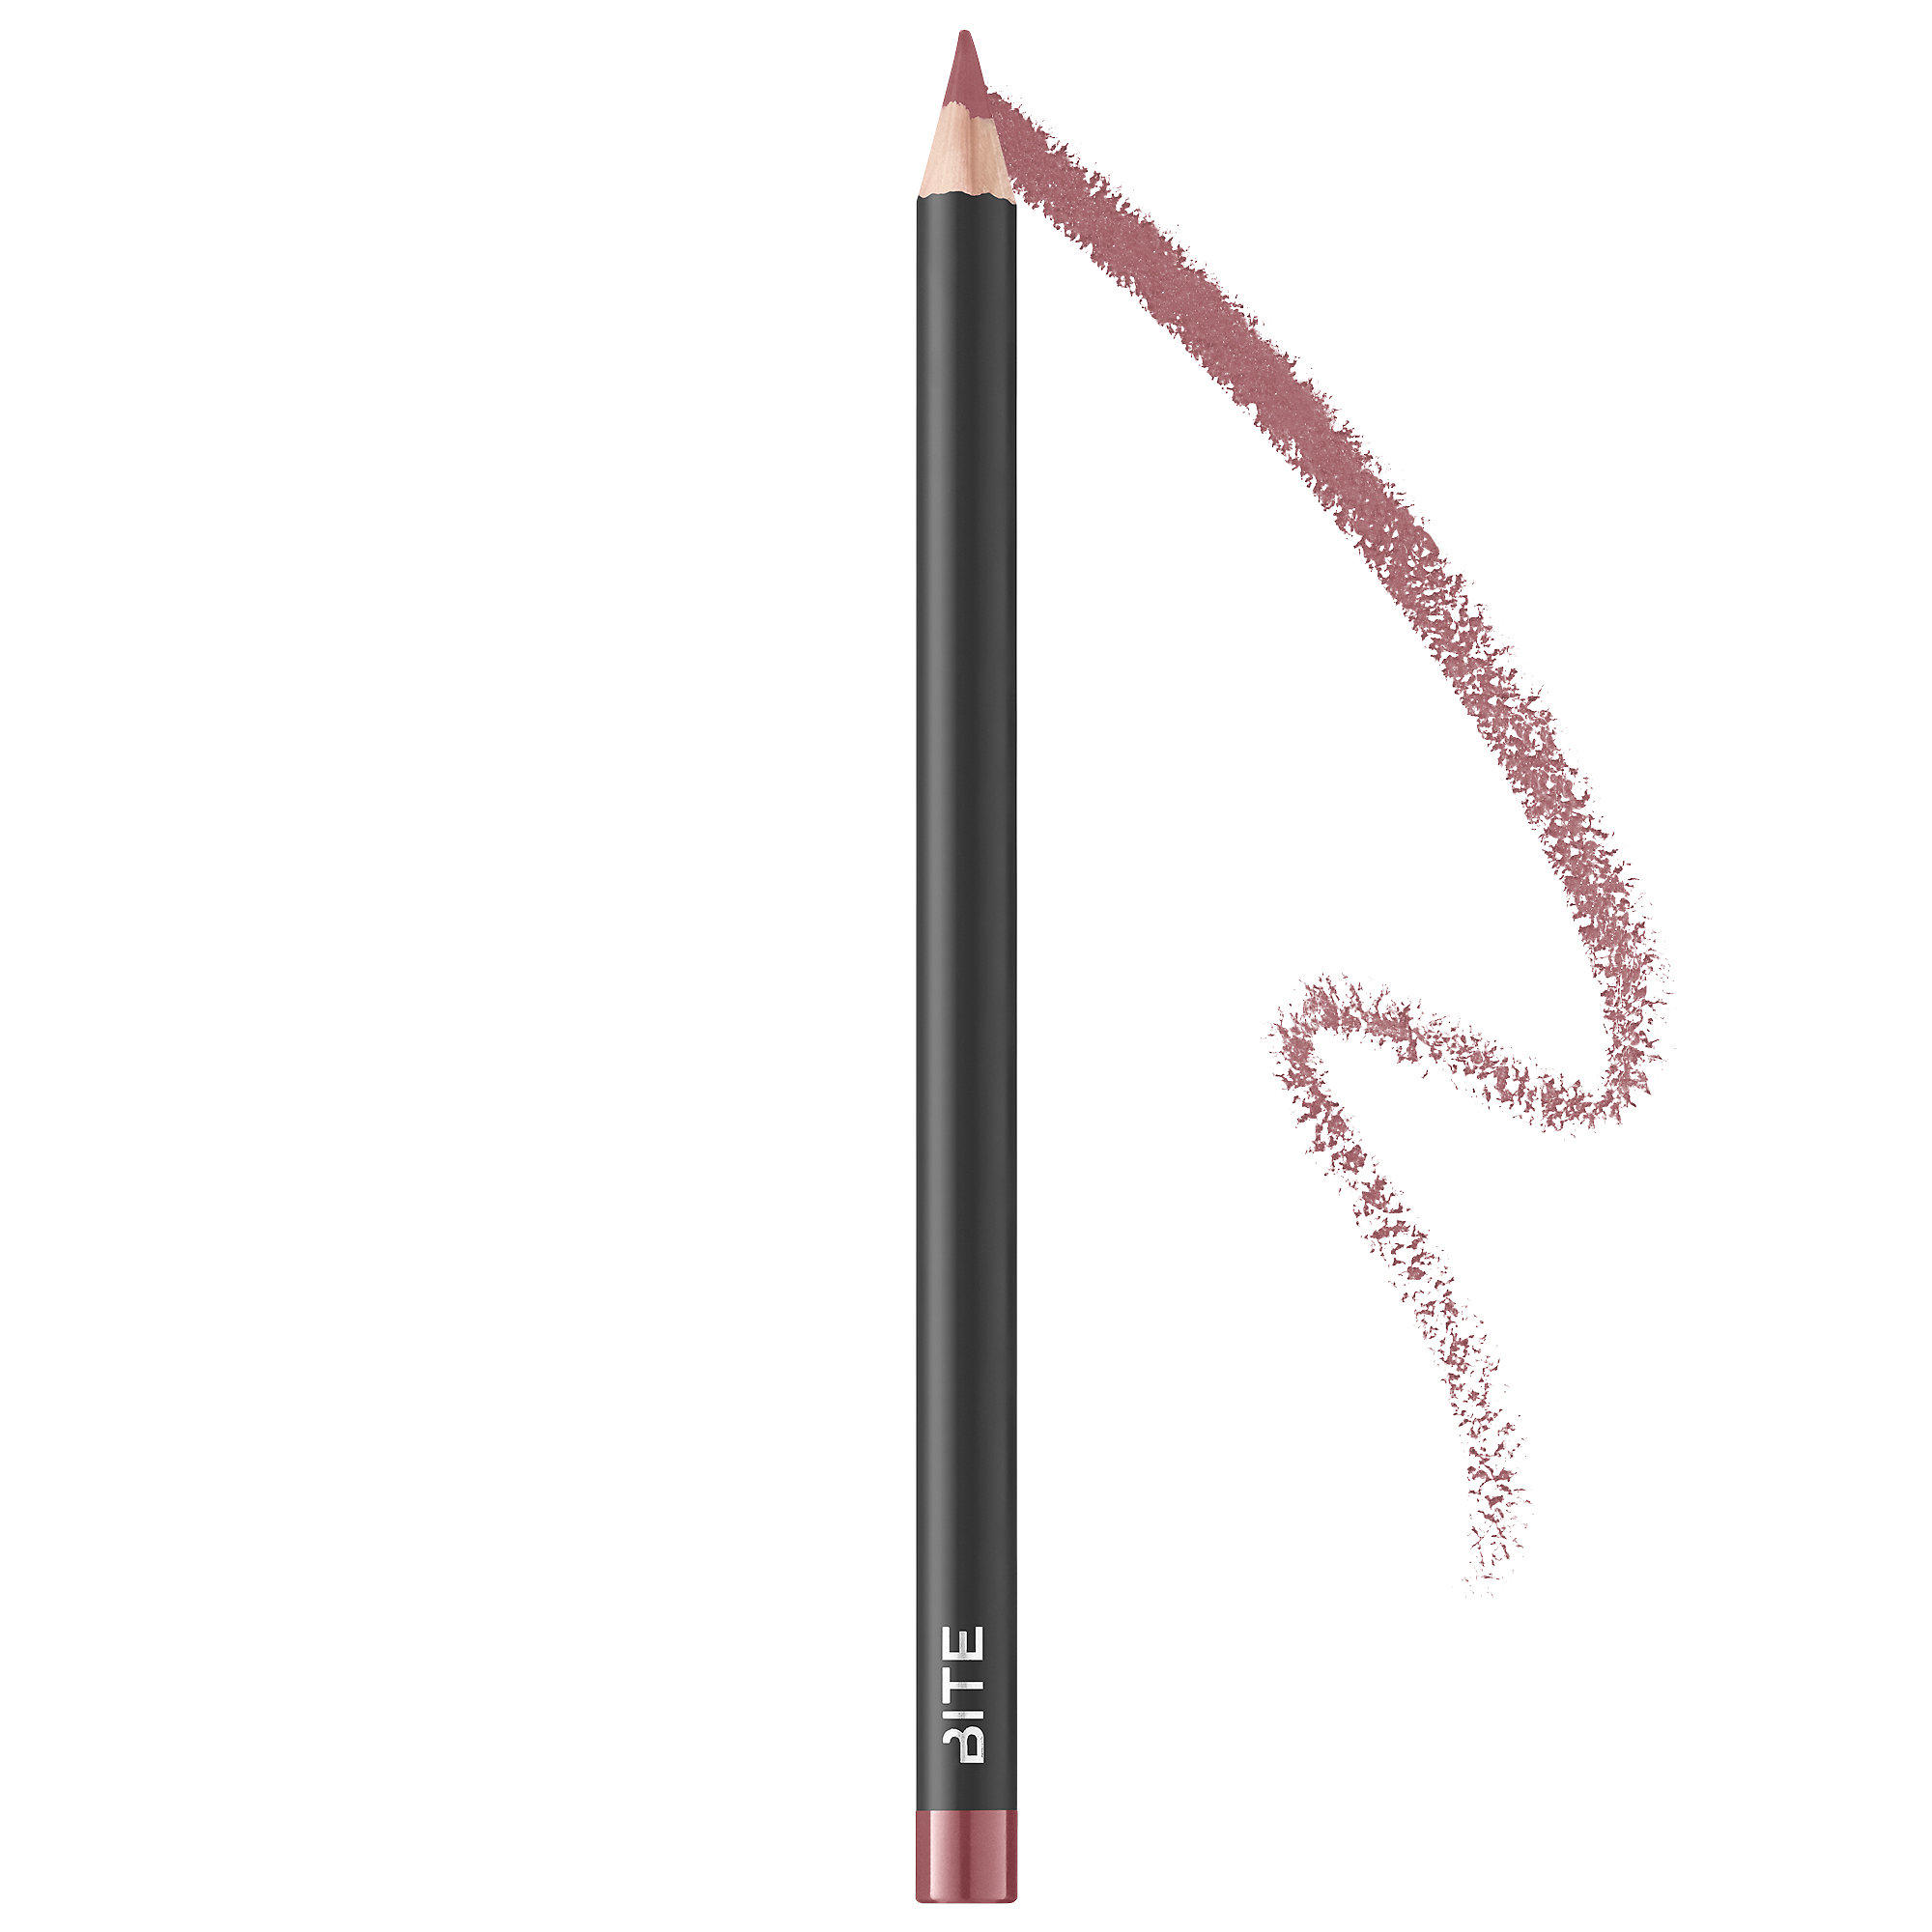 Bite Beauty The Lip Pencil Rosey Brown 022